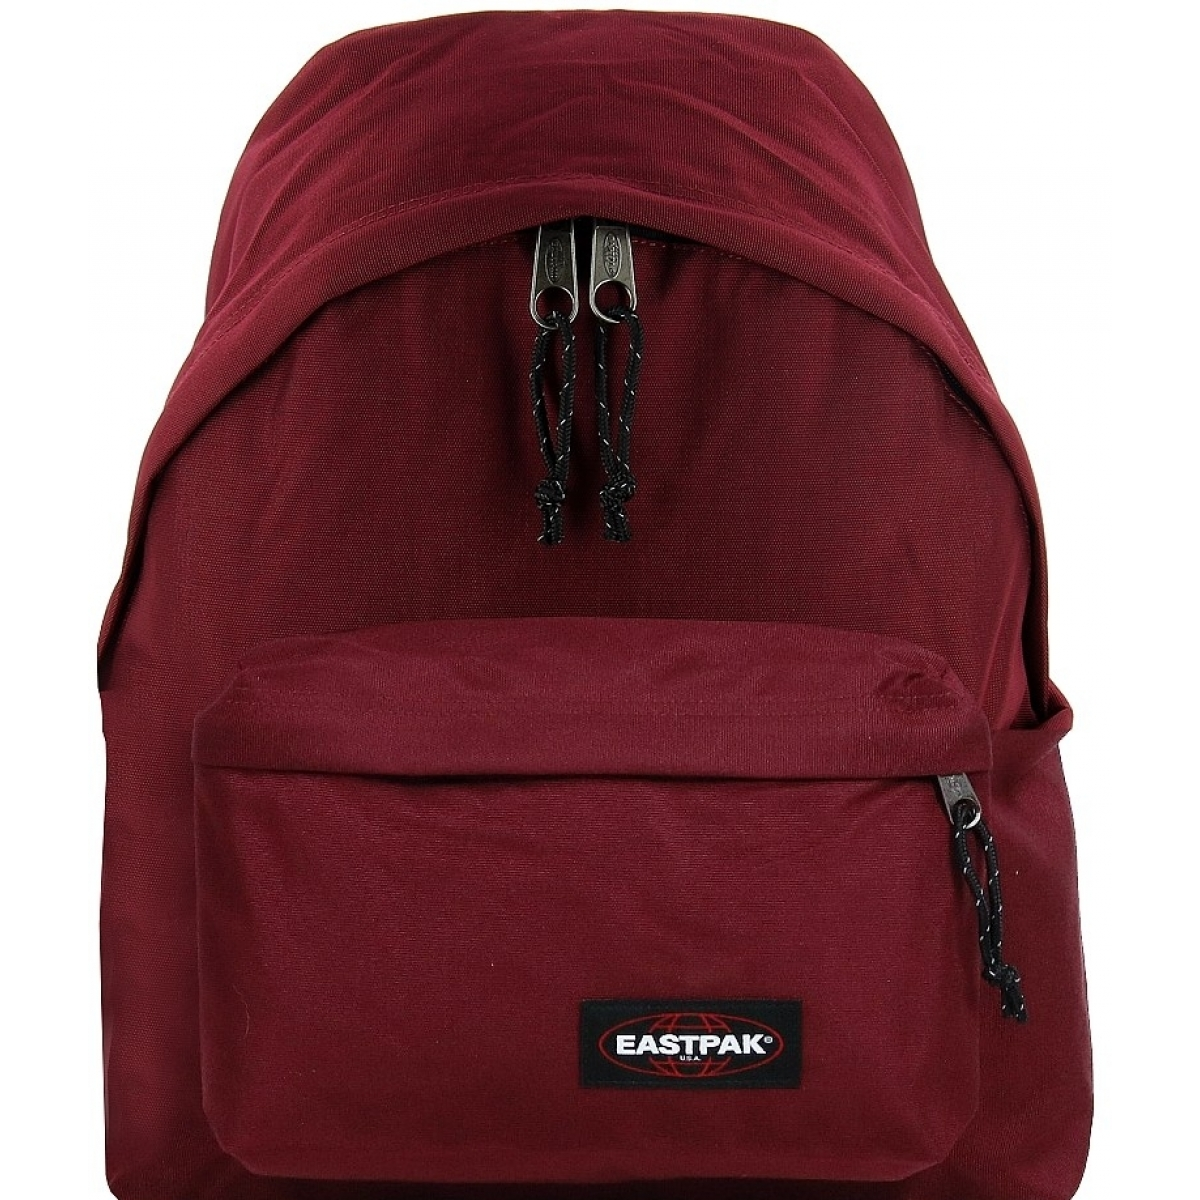 sac dos scolaire eastpak ek620 luxury merlot ek62096q couleur principale assortis. Black Bedroom Furniture Sets. Home Design Ideas